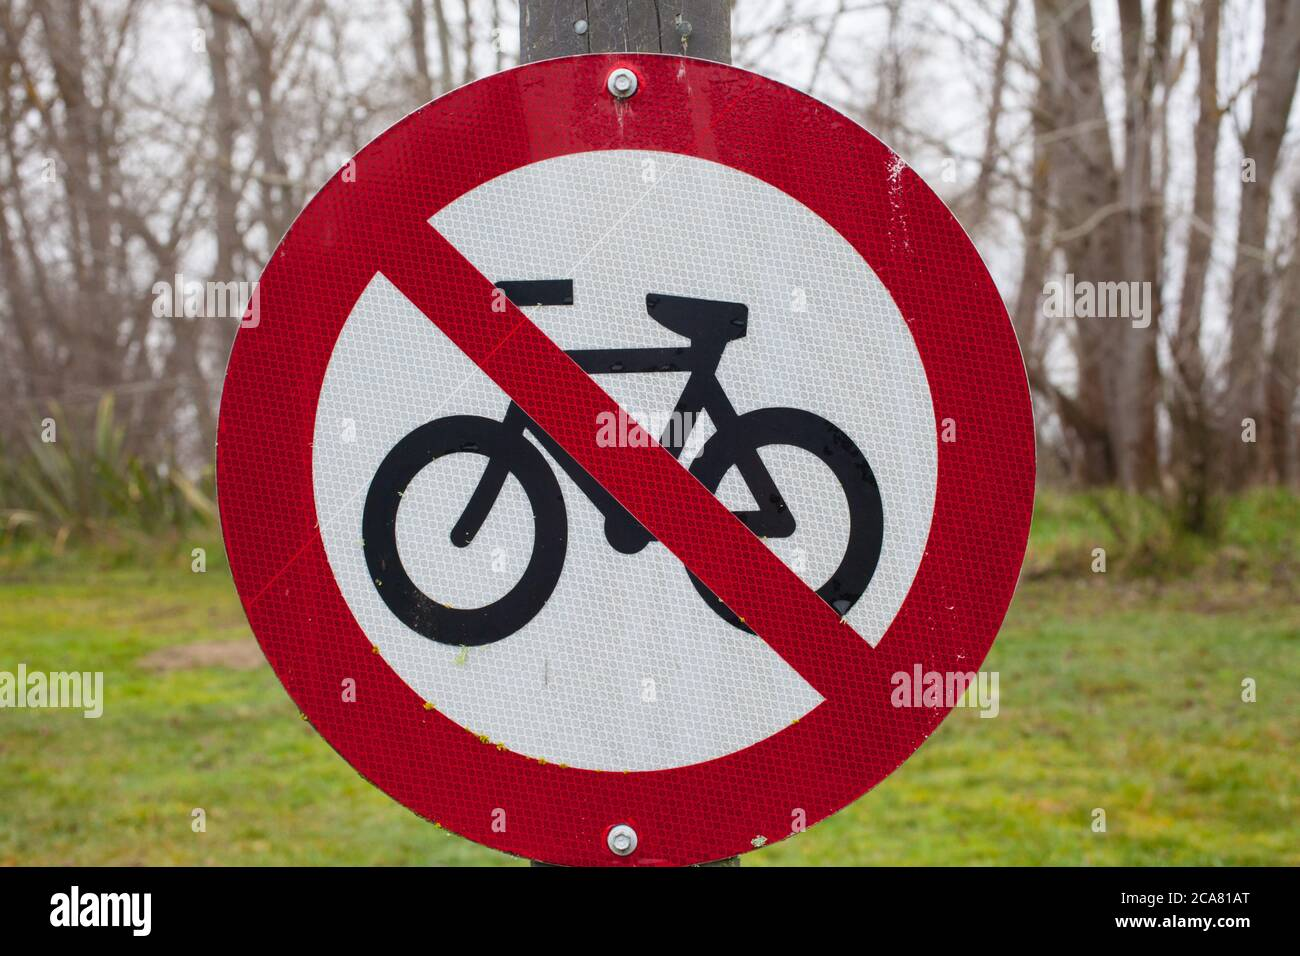 New Zealand Countryside Scenes: Danger and Warning signs e.g. on Irrigation Infrastructure; Forestry Plantations; River Gravel Extraction. Stock Photo